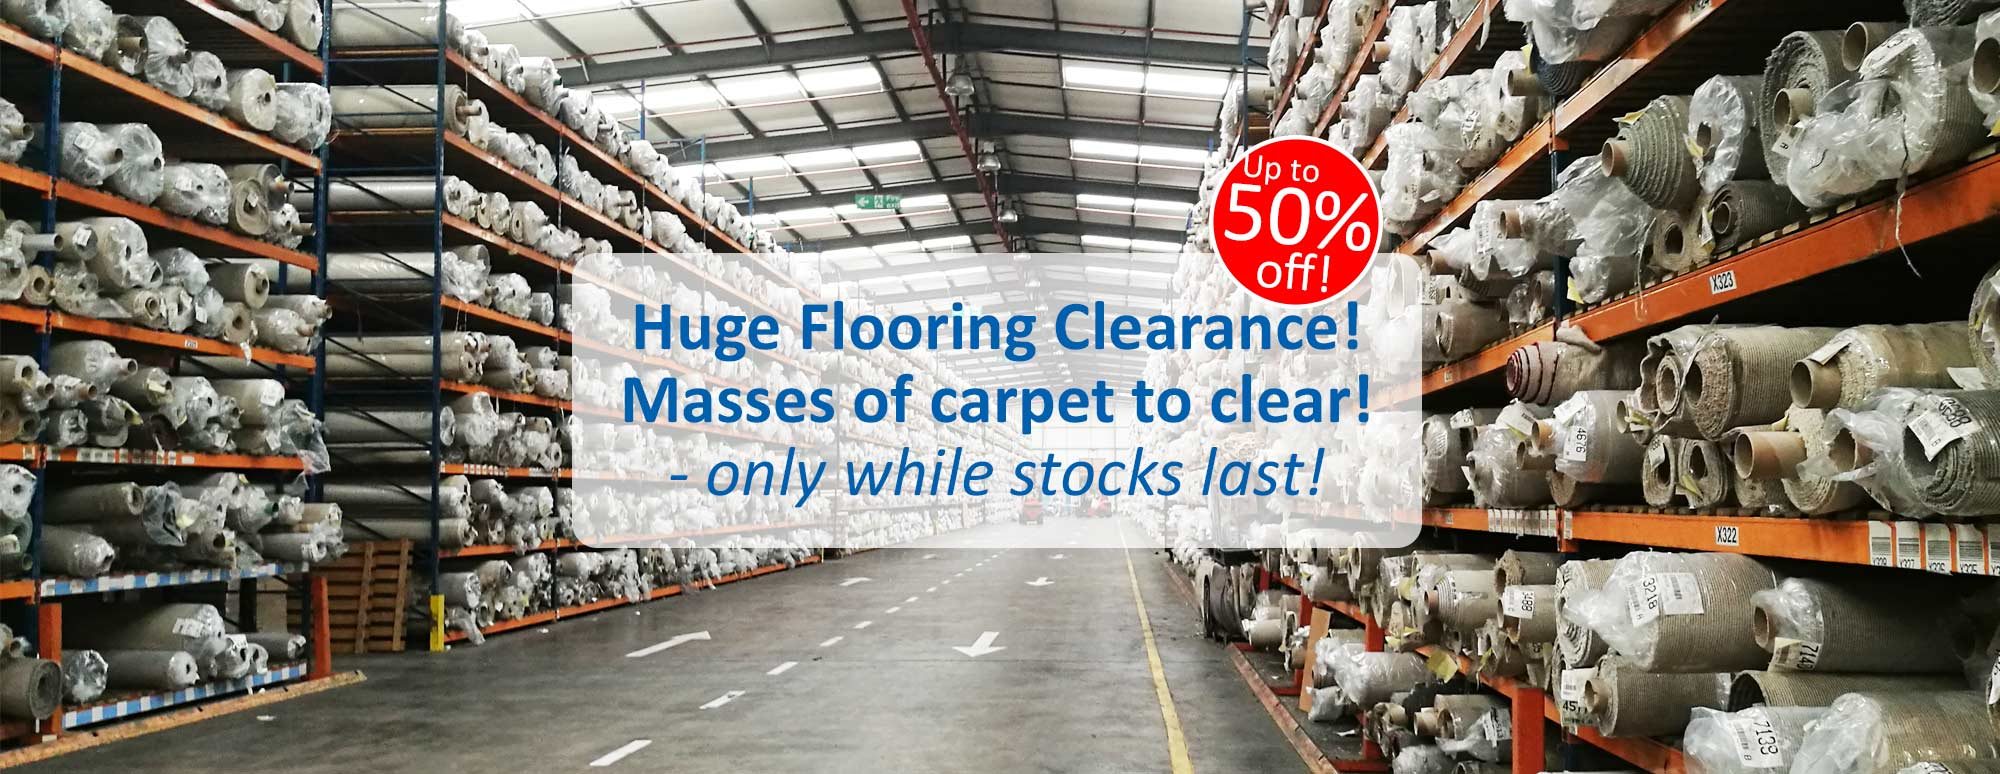 Carpet Clearance!